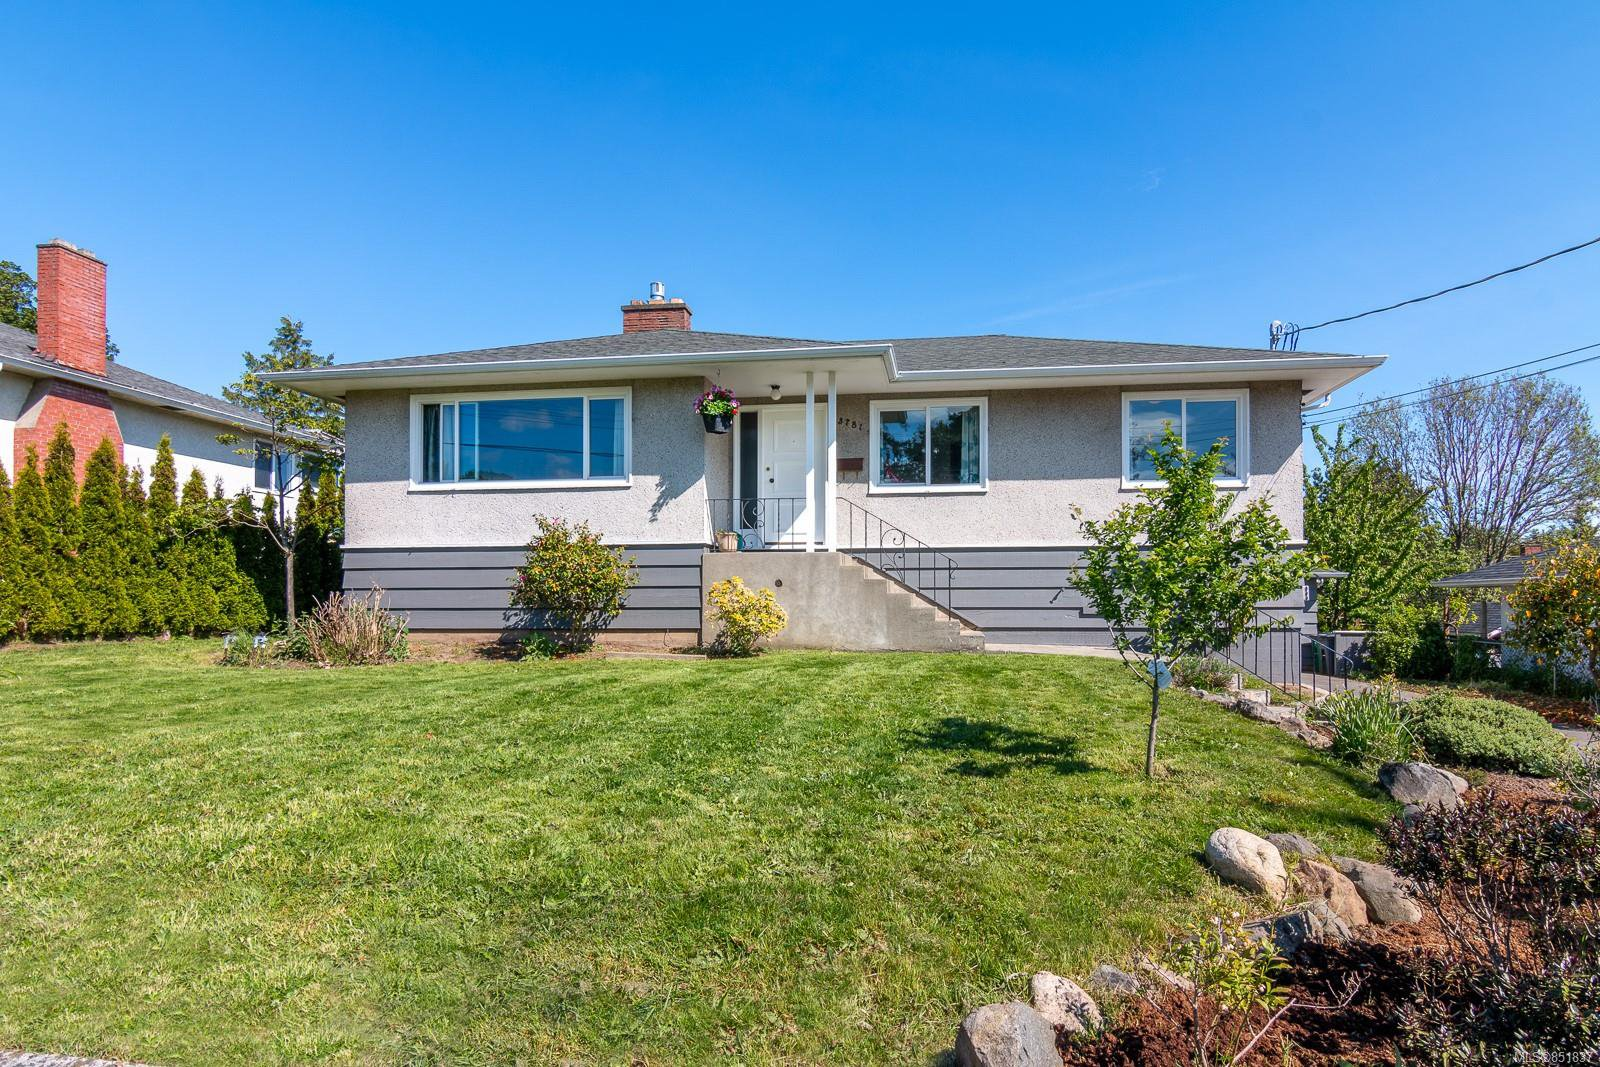 Main Photo: 3781 Casey Dr in : SW Tillicum House for sale (Saanich West)  : MLS®# 851837